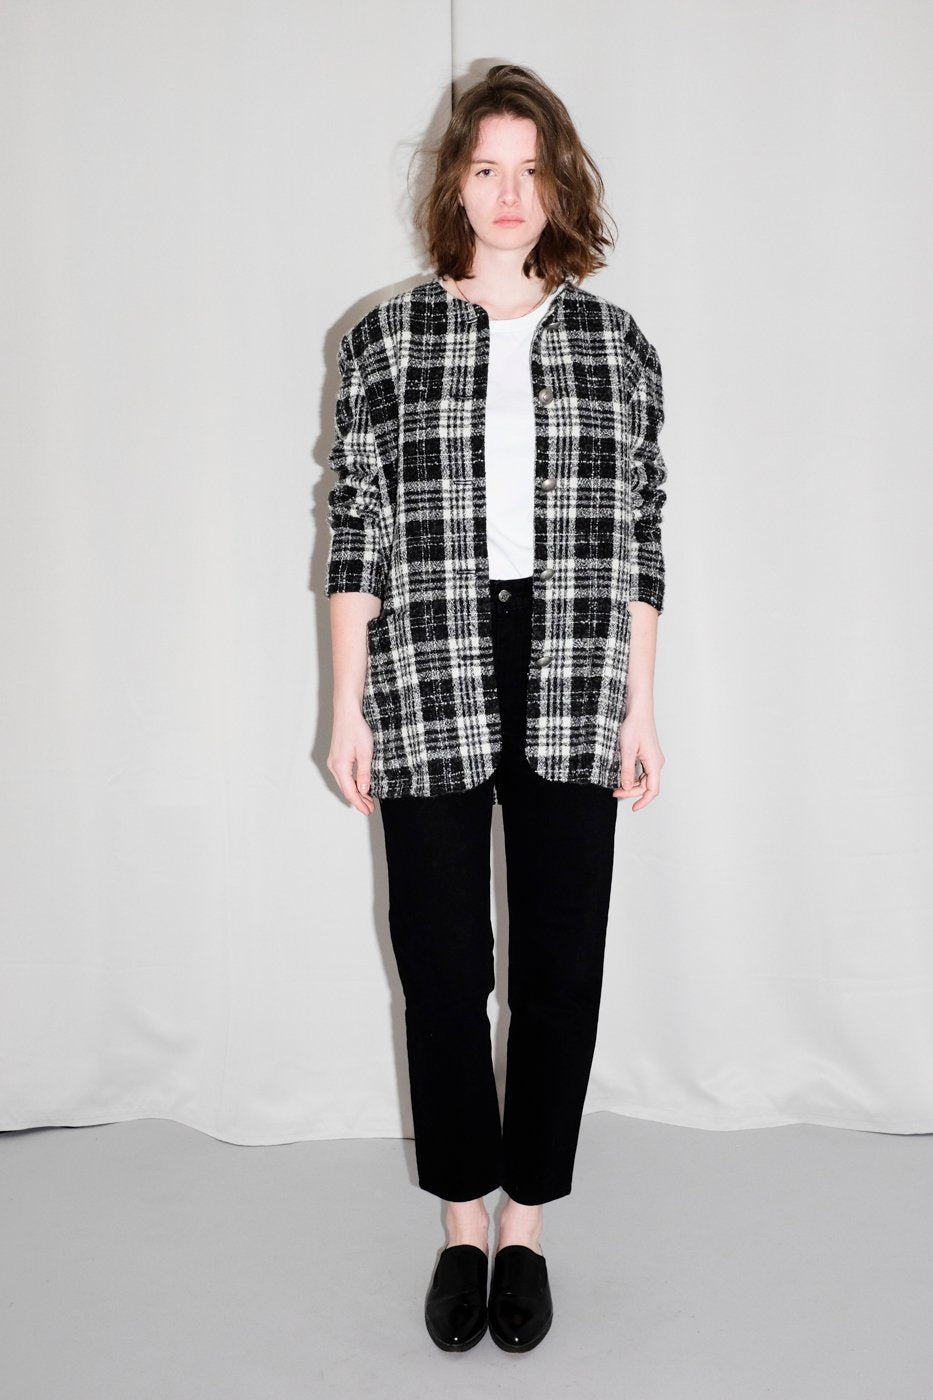 0637_VINTAGE TARTAN PLAID BLACK WHITE BLAZER COAT